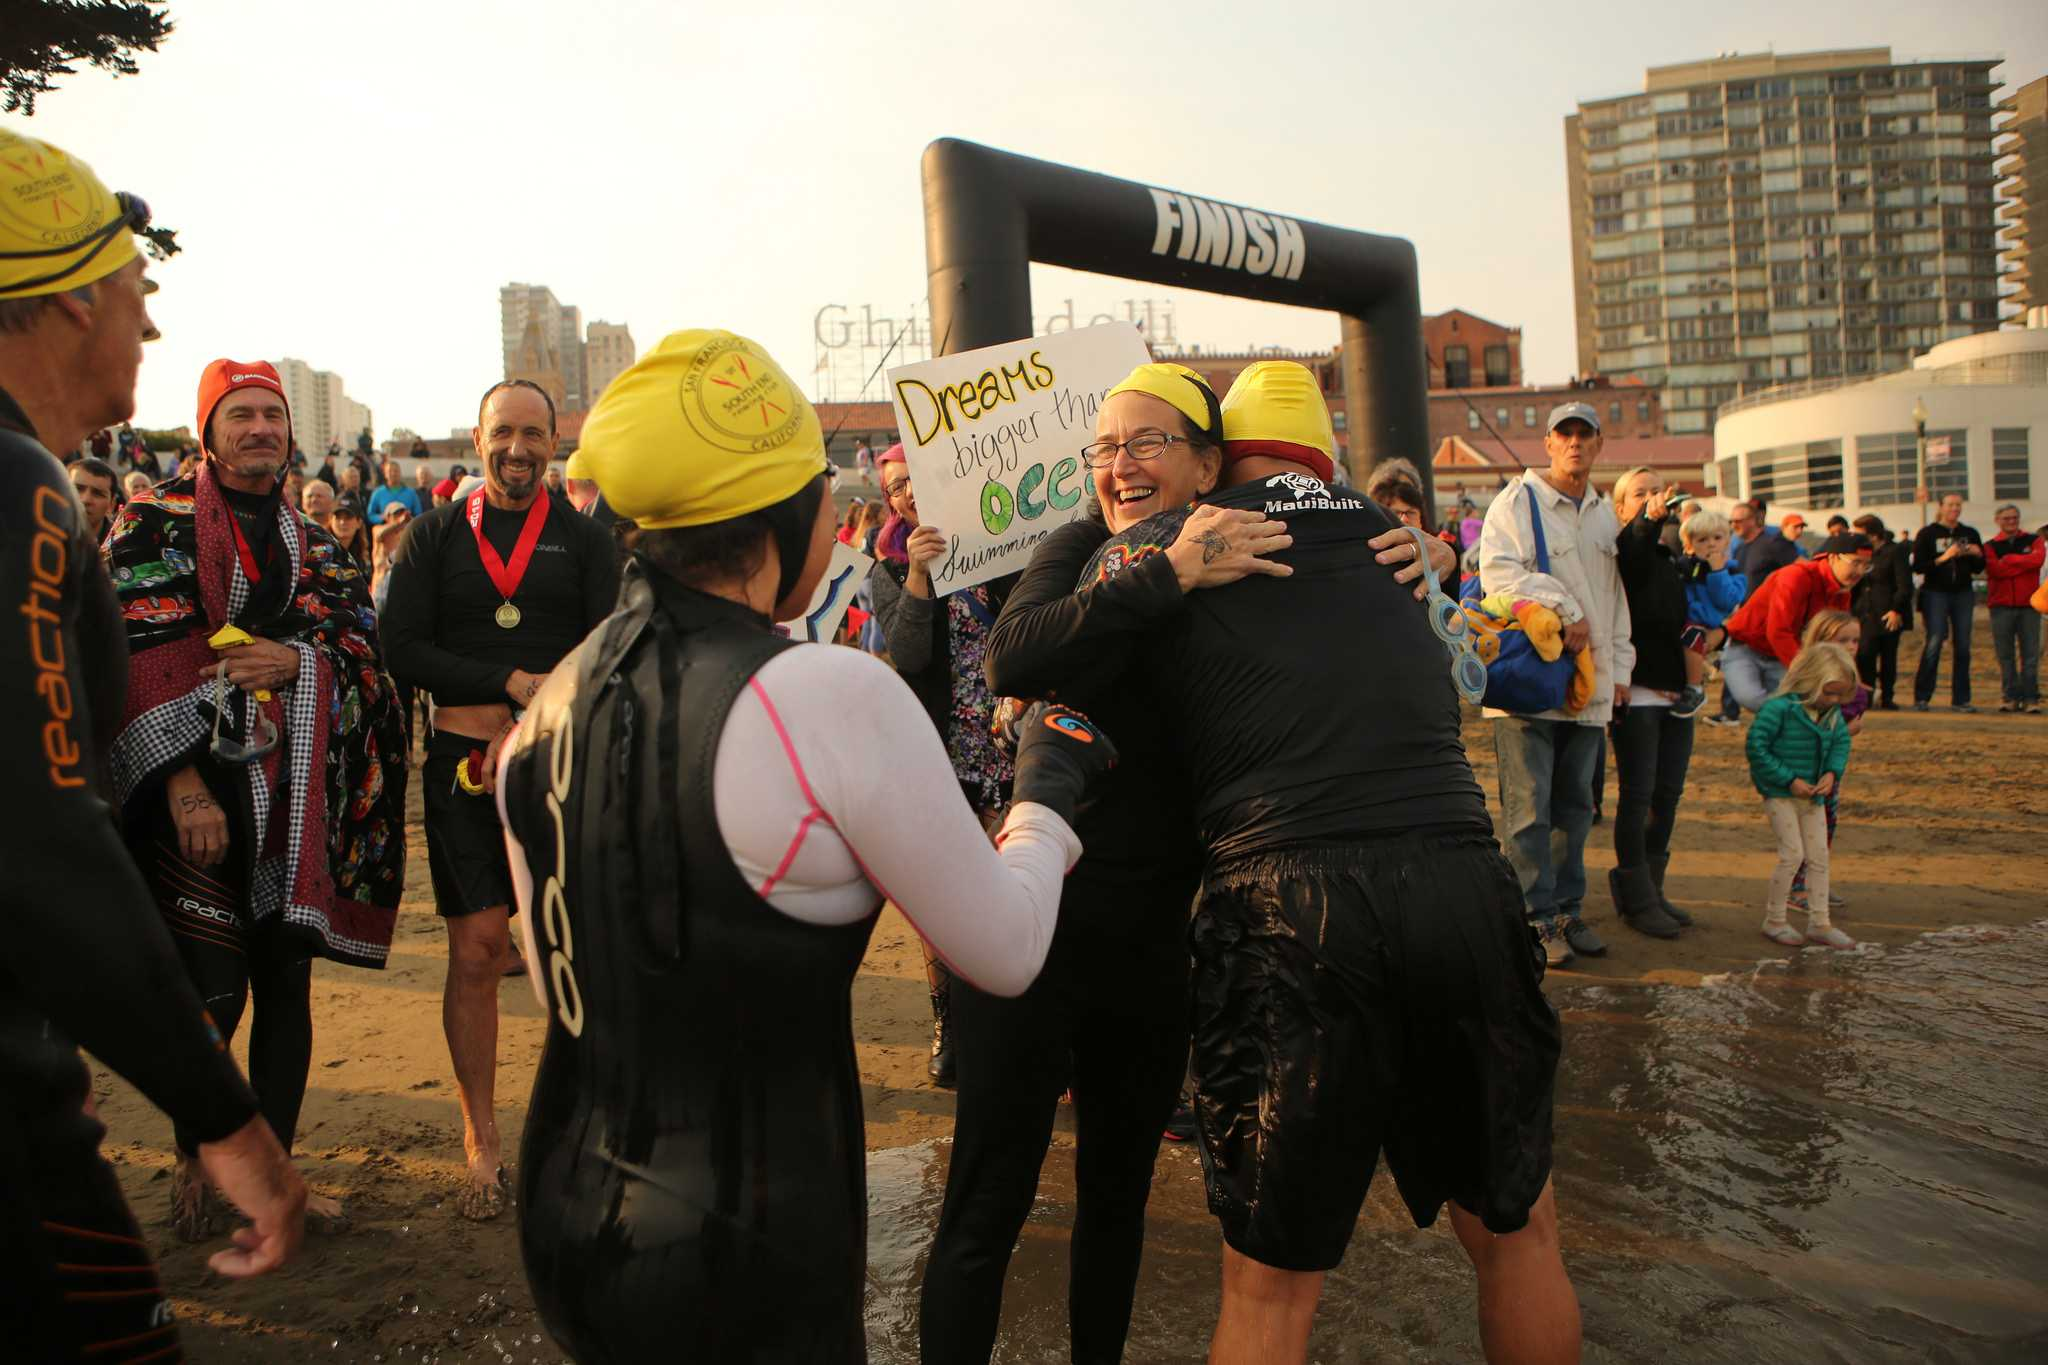 Nancy Jodaitis (left), an AB 540 financial aid counselor at SF State, hugs SF State alumni Marcos Tapia (right) after swimming to shore during the Alcatraz Invitational on Sunday, Sept. 13, 2015 in San Francisco, Calif. (Joel Angel Juárez /  Xpress)